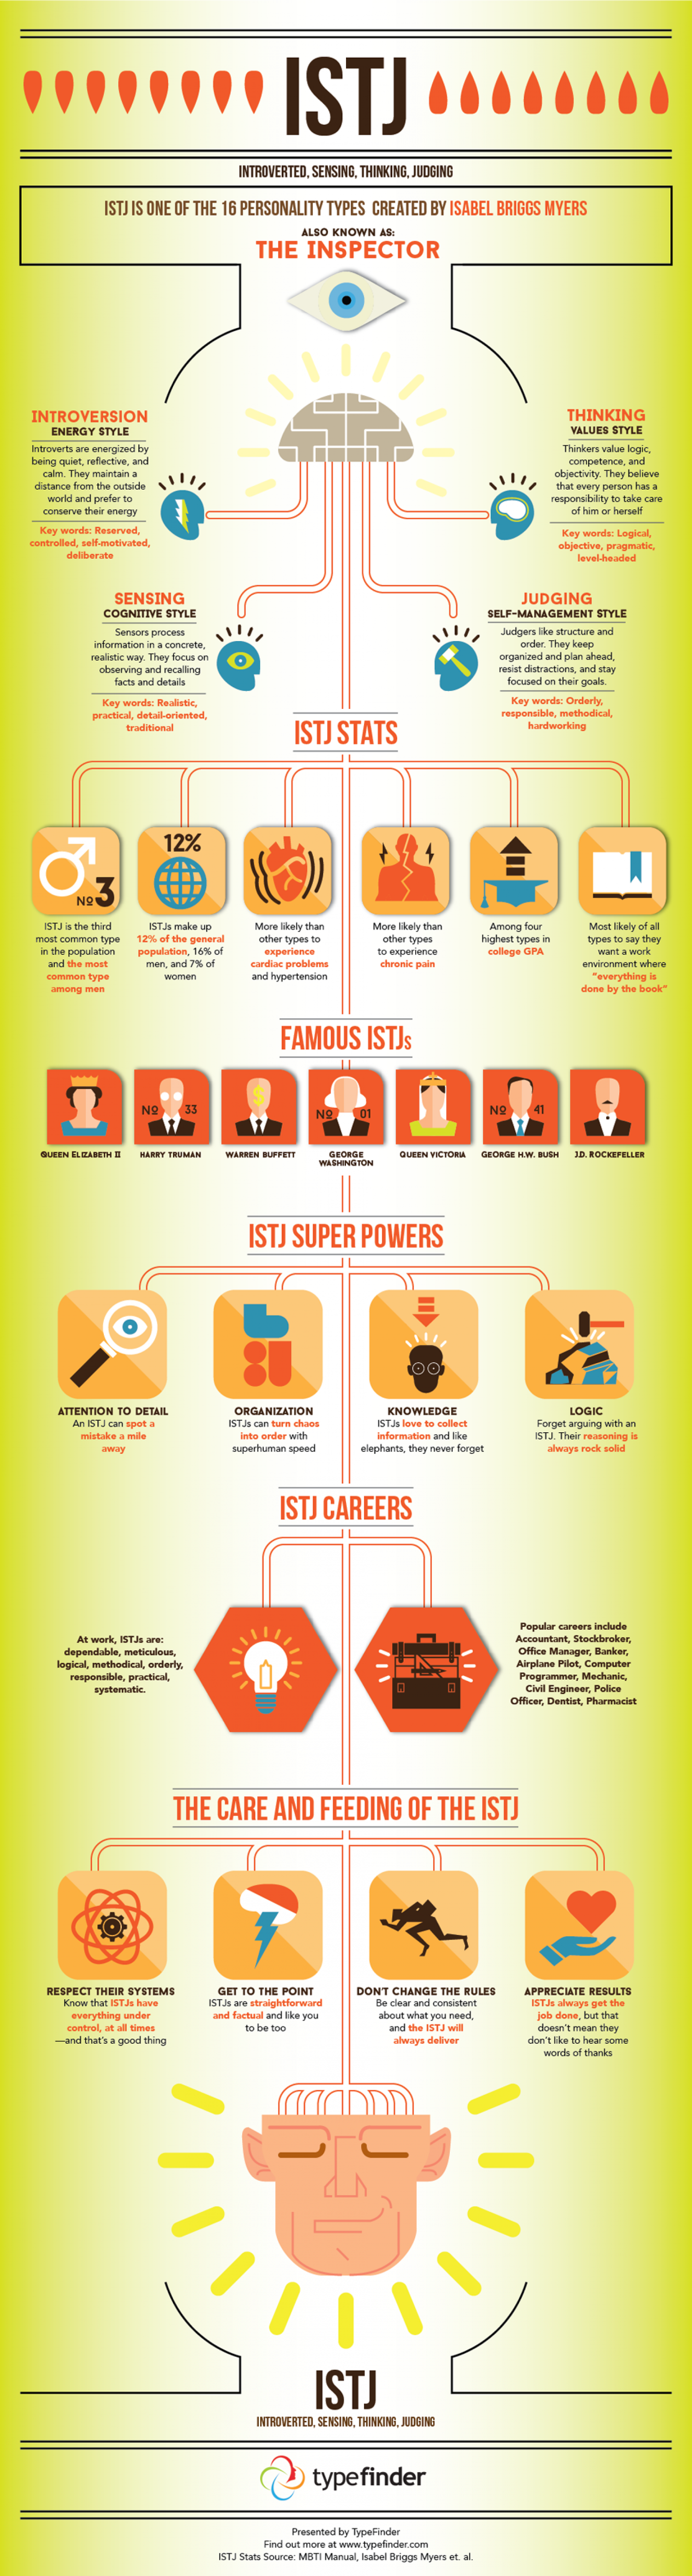 All About the ISTJ Personality Infographic